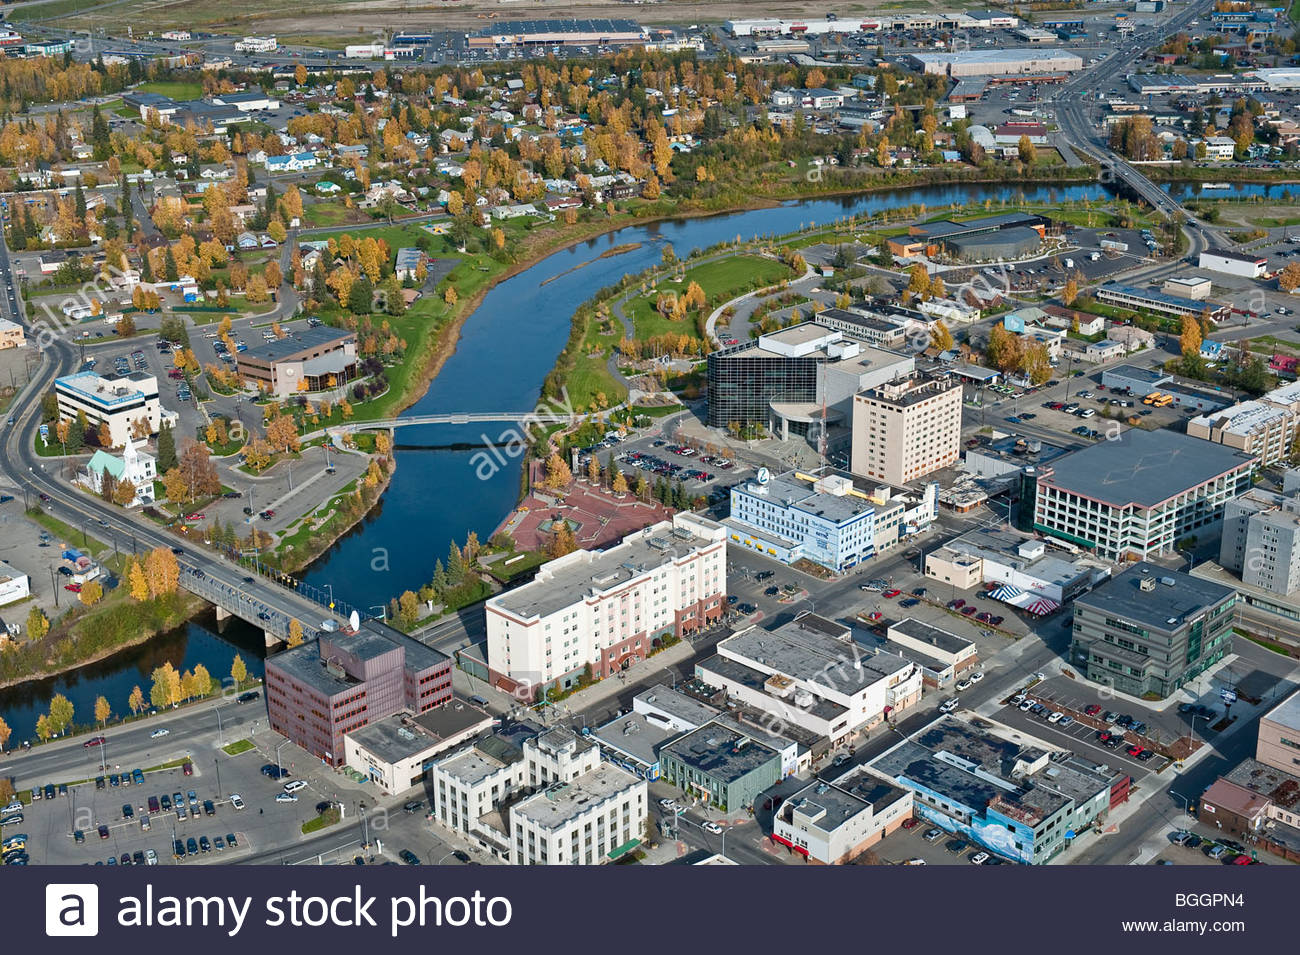 Alaska aerial view of Fairbanks, town, on the banks of the Chena River. - Stock Image